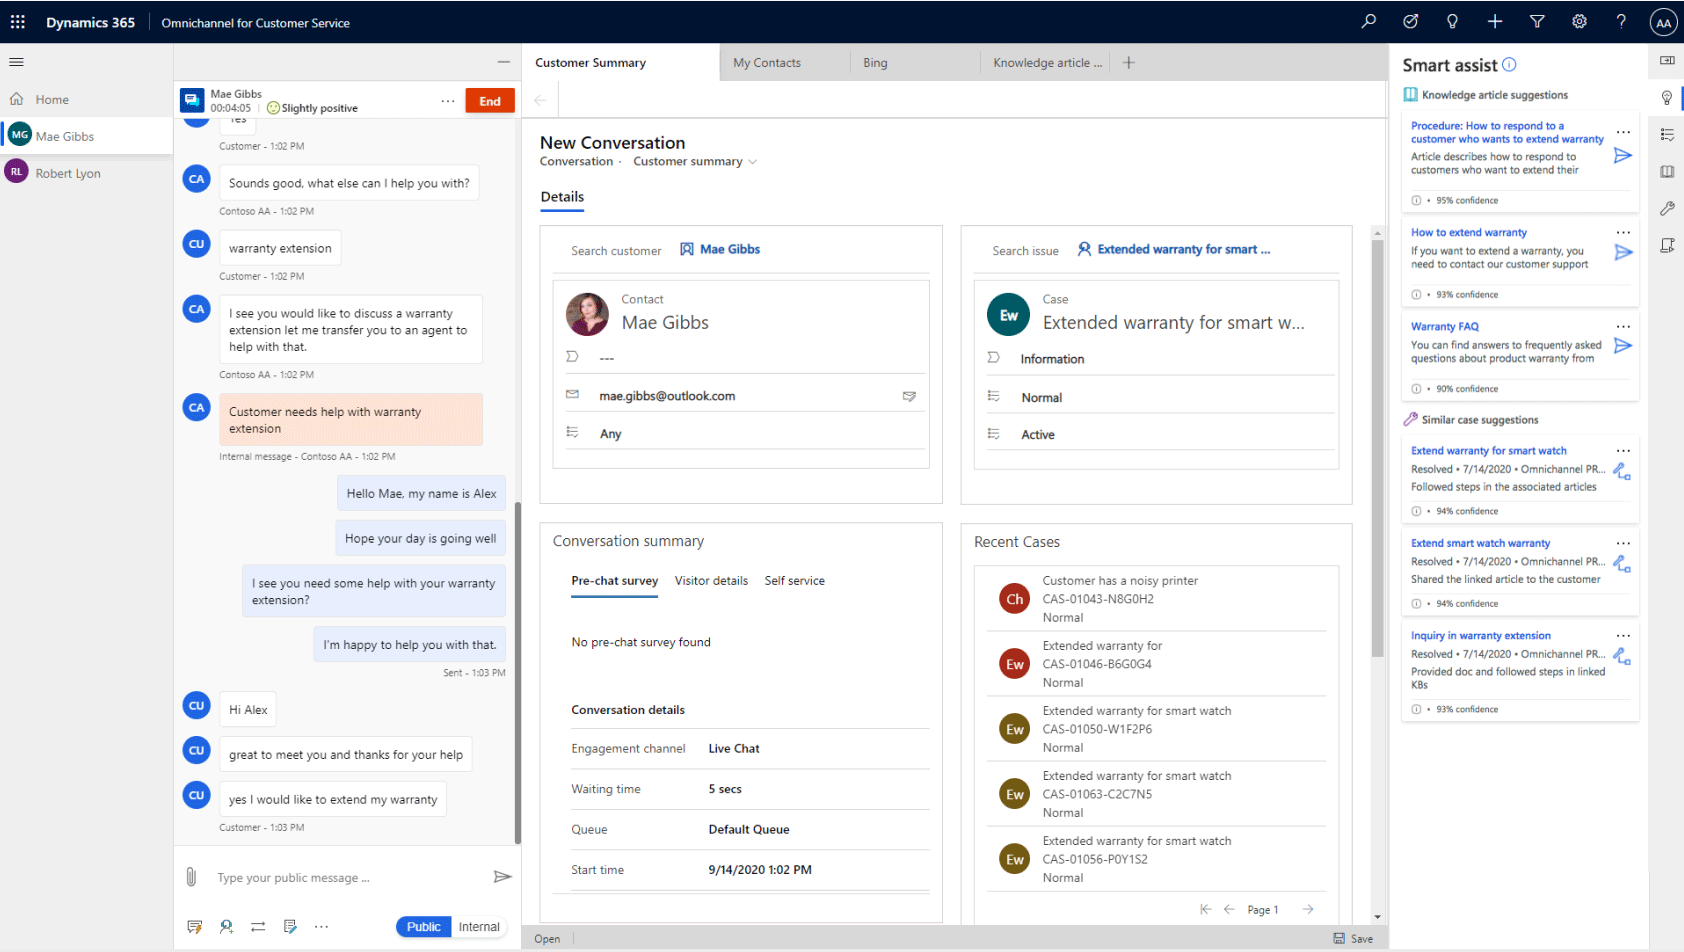 dynamics 365 new conversation